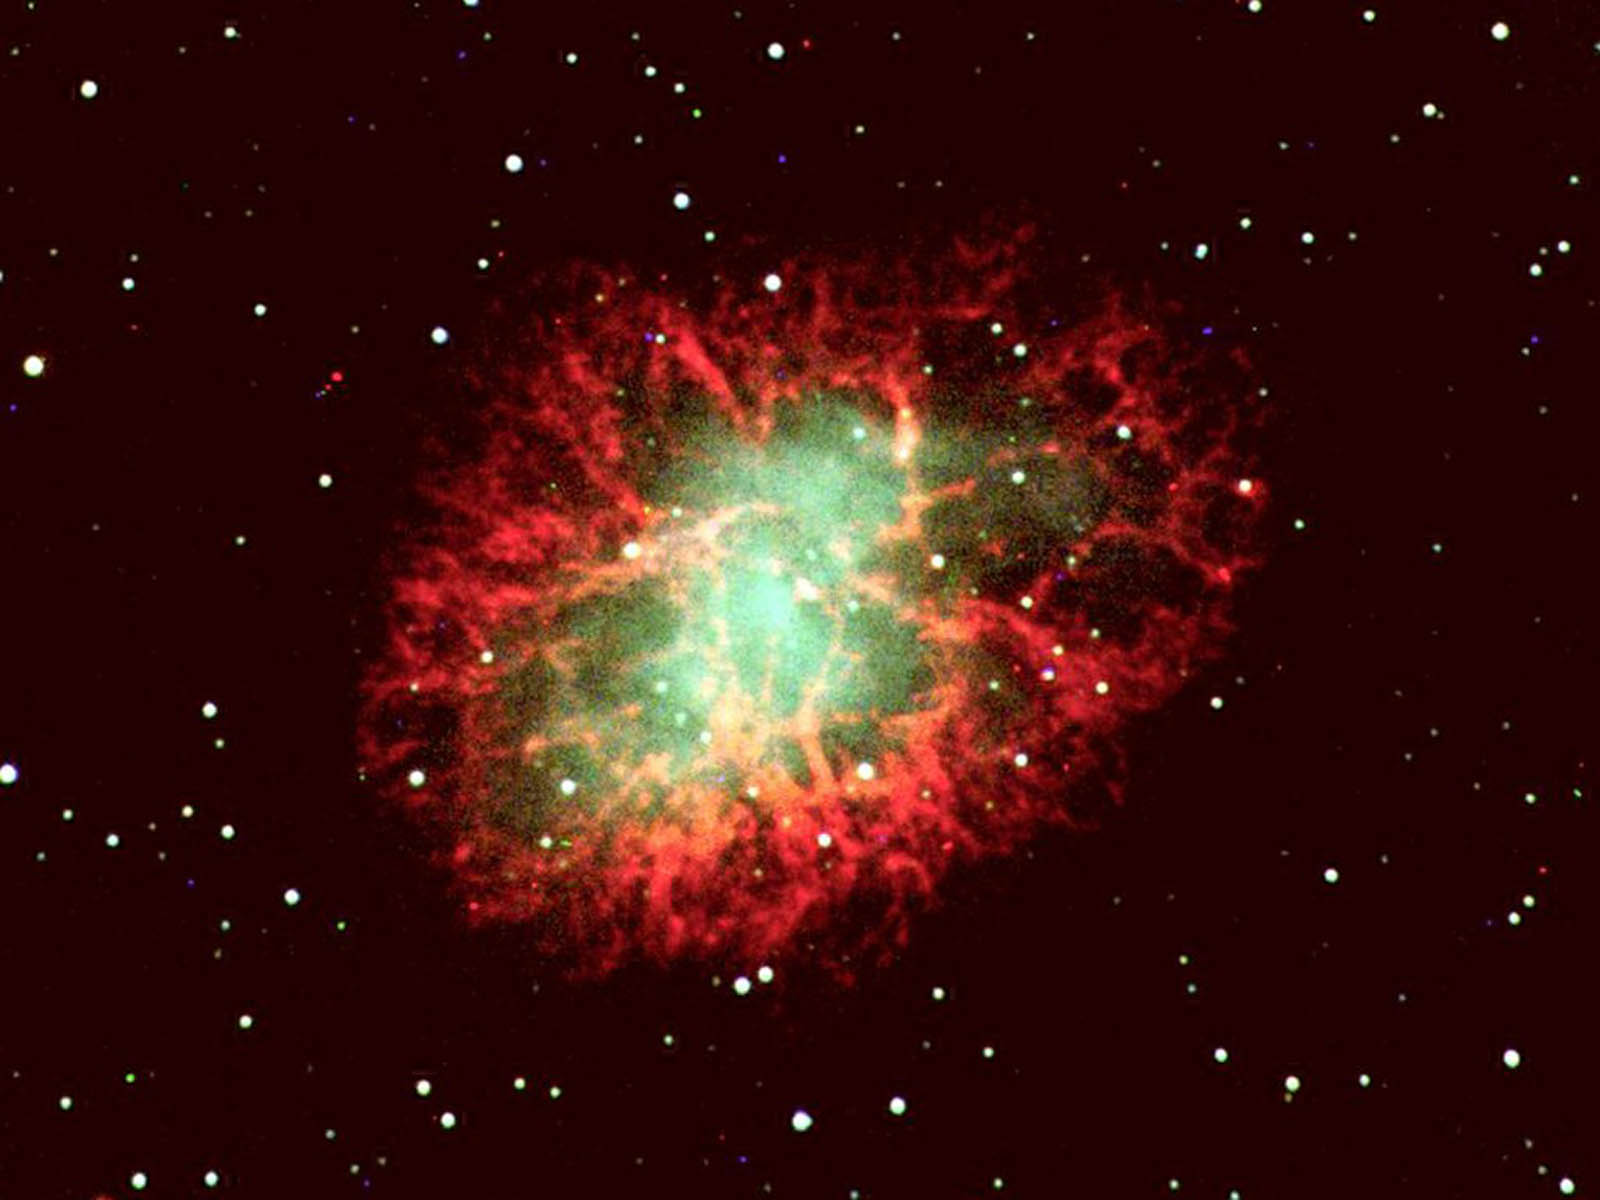 Download Cars Wallpapers For Windows Xp Wallpapers Crab Nebula